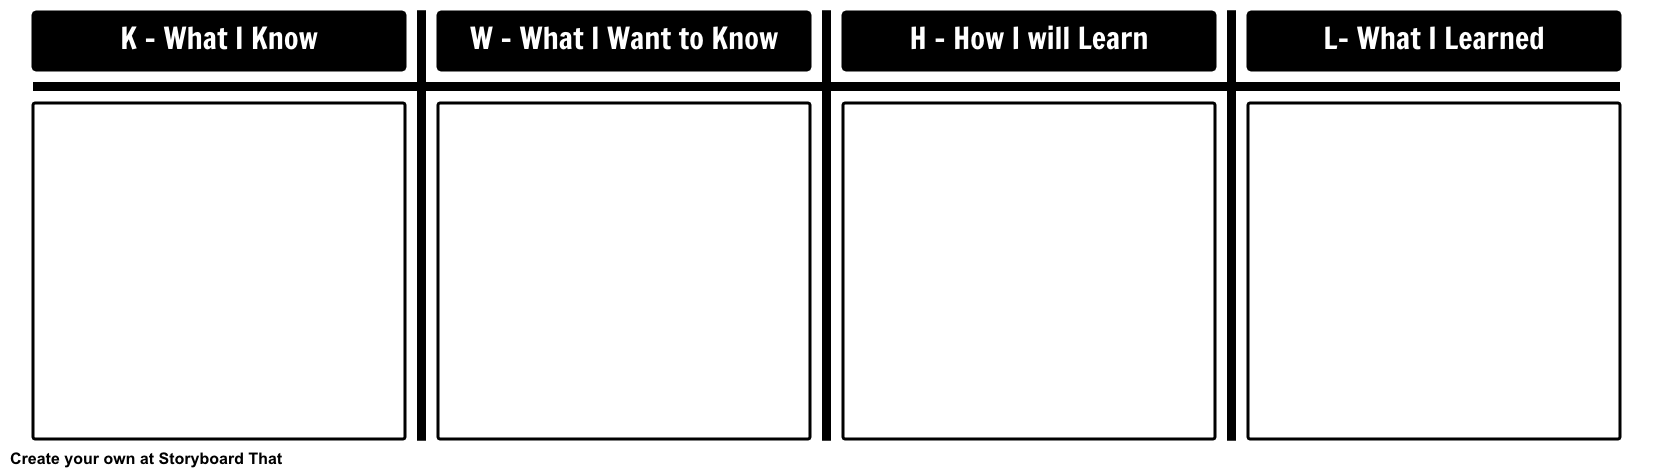 graphic regarding Free Printable Kwl Chart called KWL Chart Template Picture Organizer Templates KWHL Chart